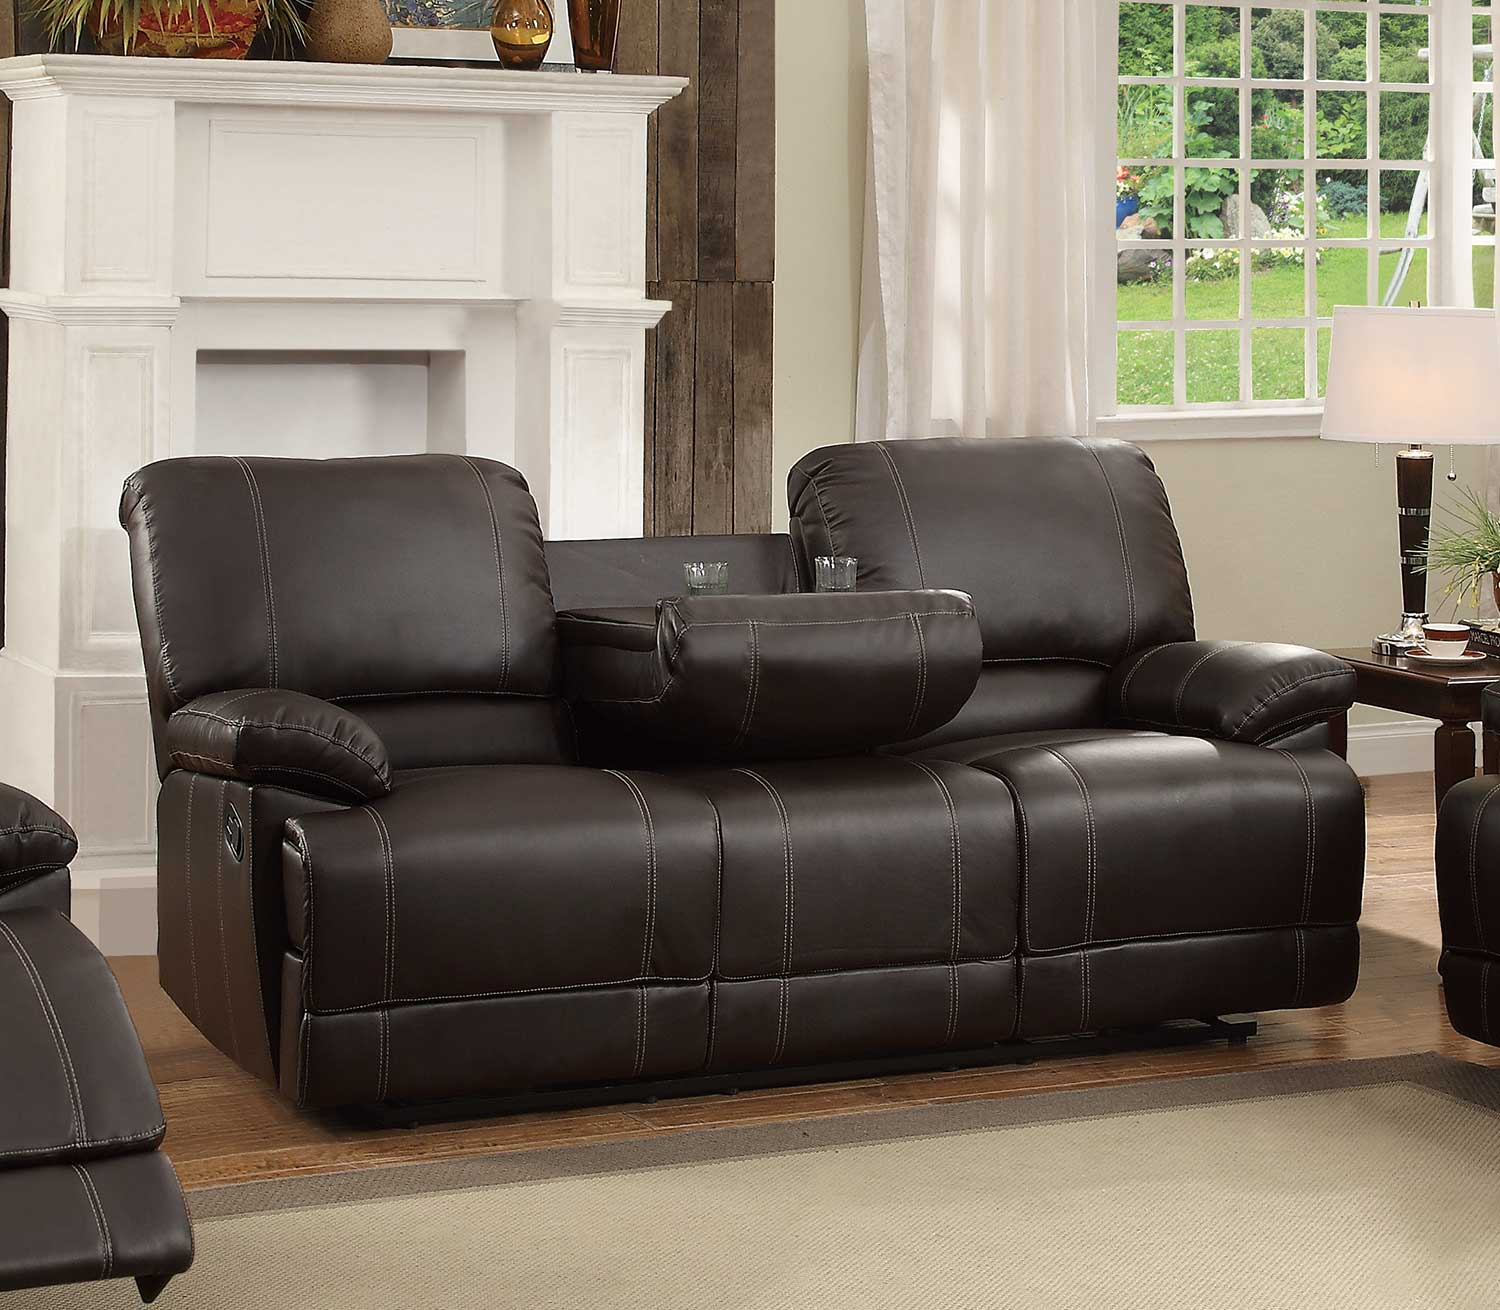 Homelegance Cassville Double Reclining Sofa with Center ...